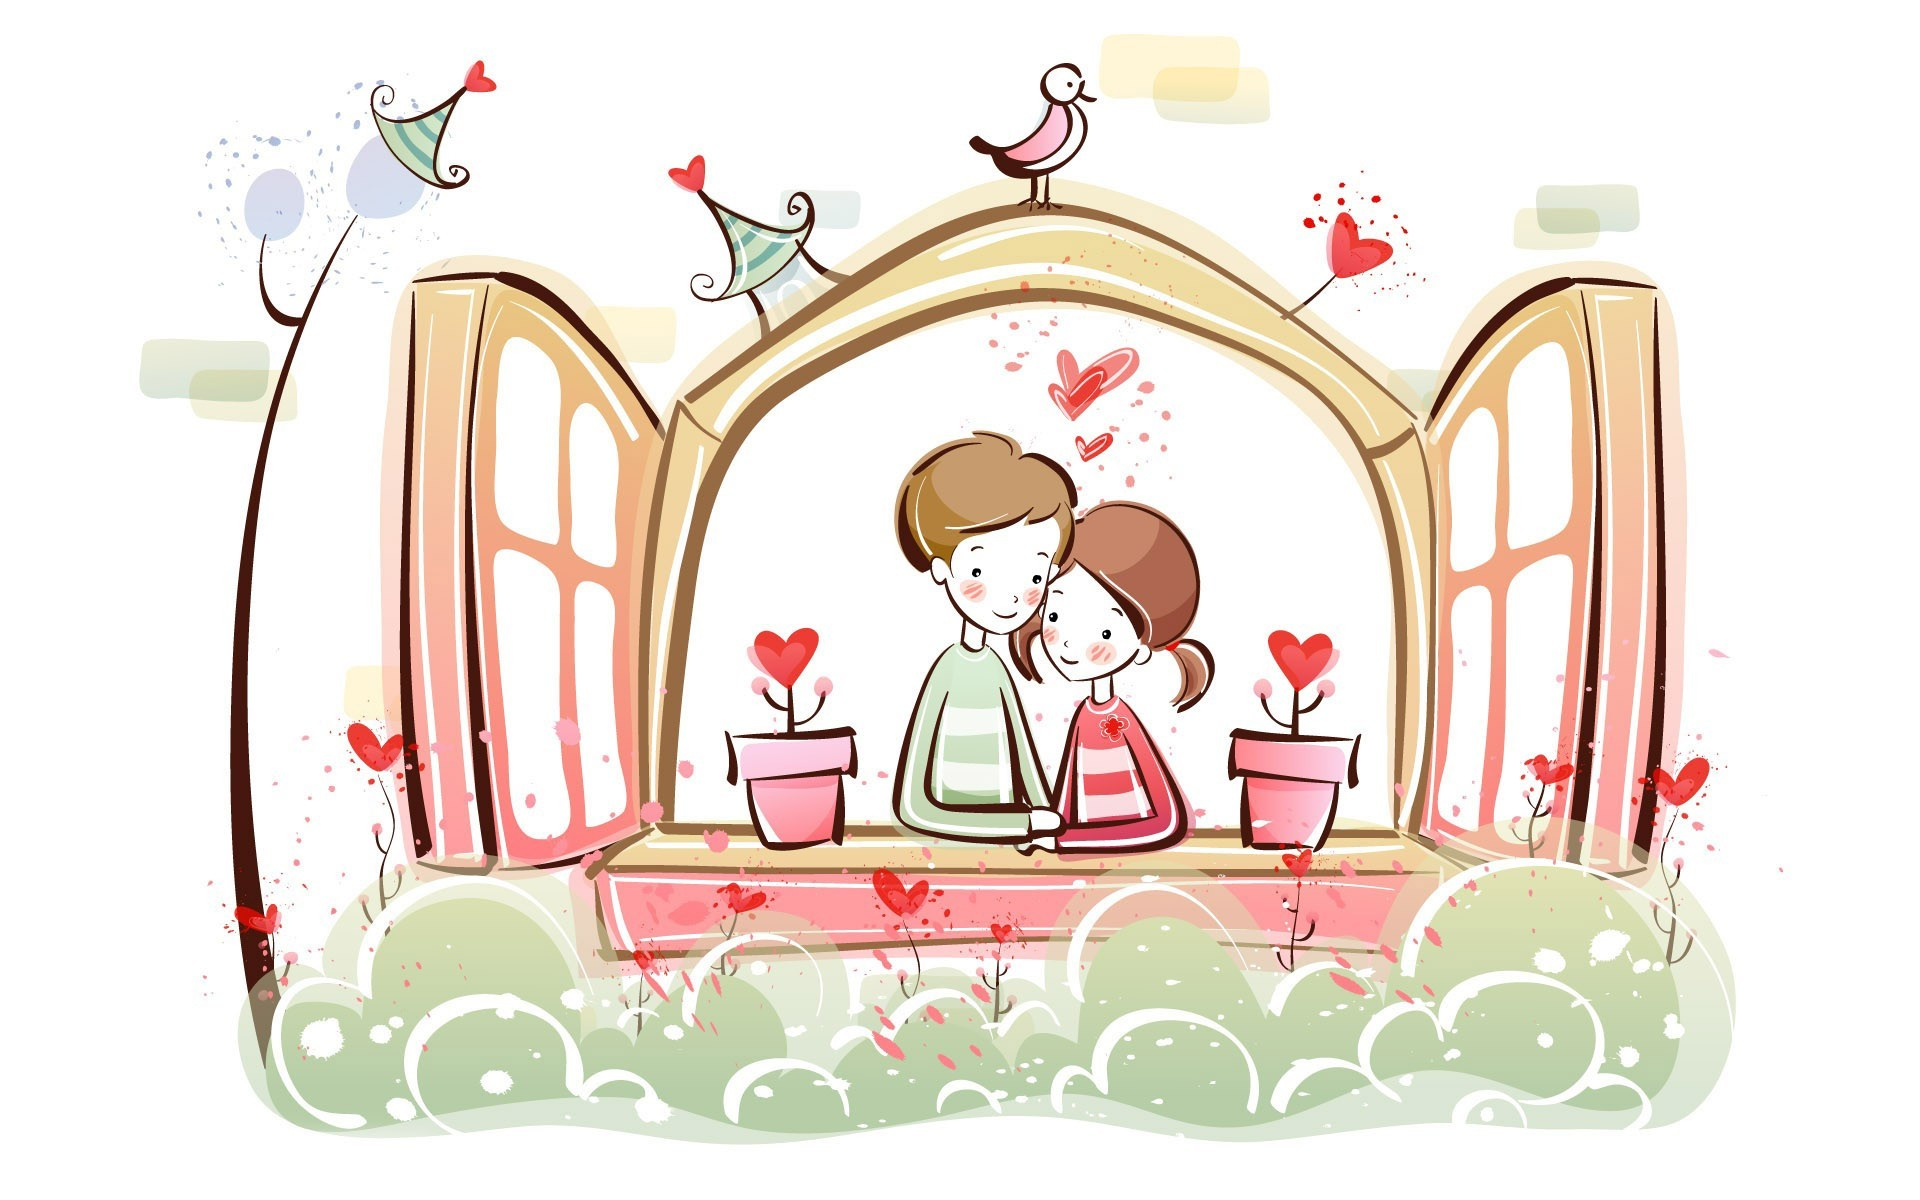 Wallpaper Fall In Love cartoon : cartoon Love Wallpaper - Wallpaper, High Definition, High Quality, Widescreen